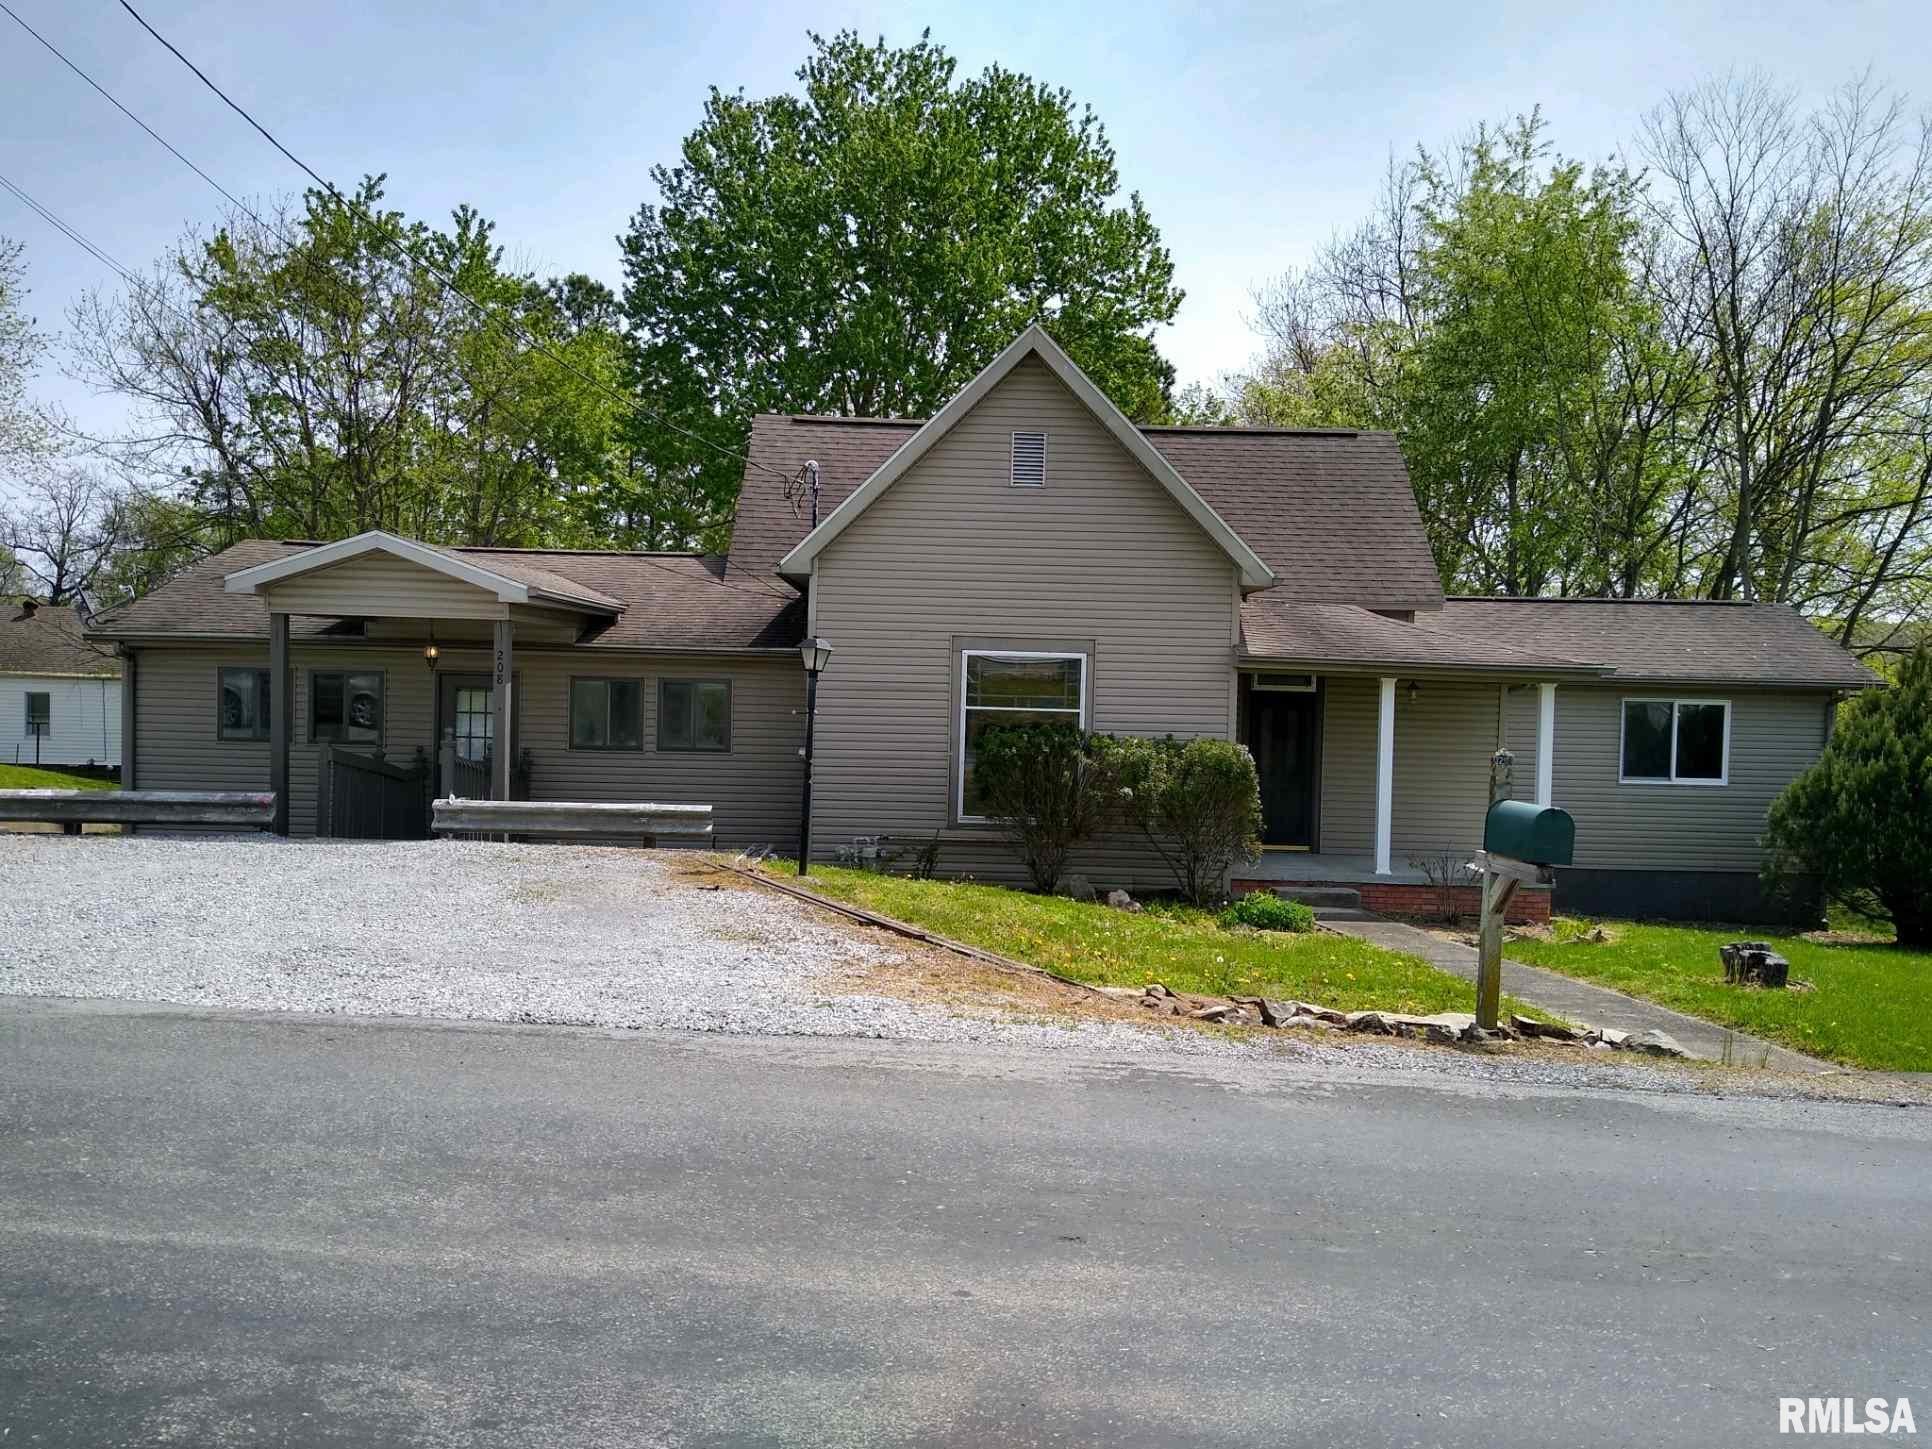 208 N 3RD Property Photo - Vienna, IL real estate listing